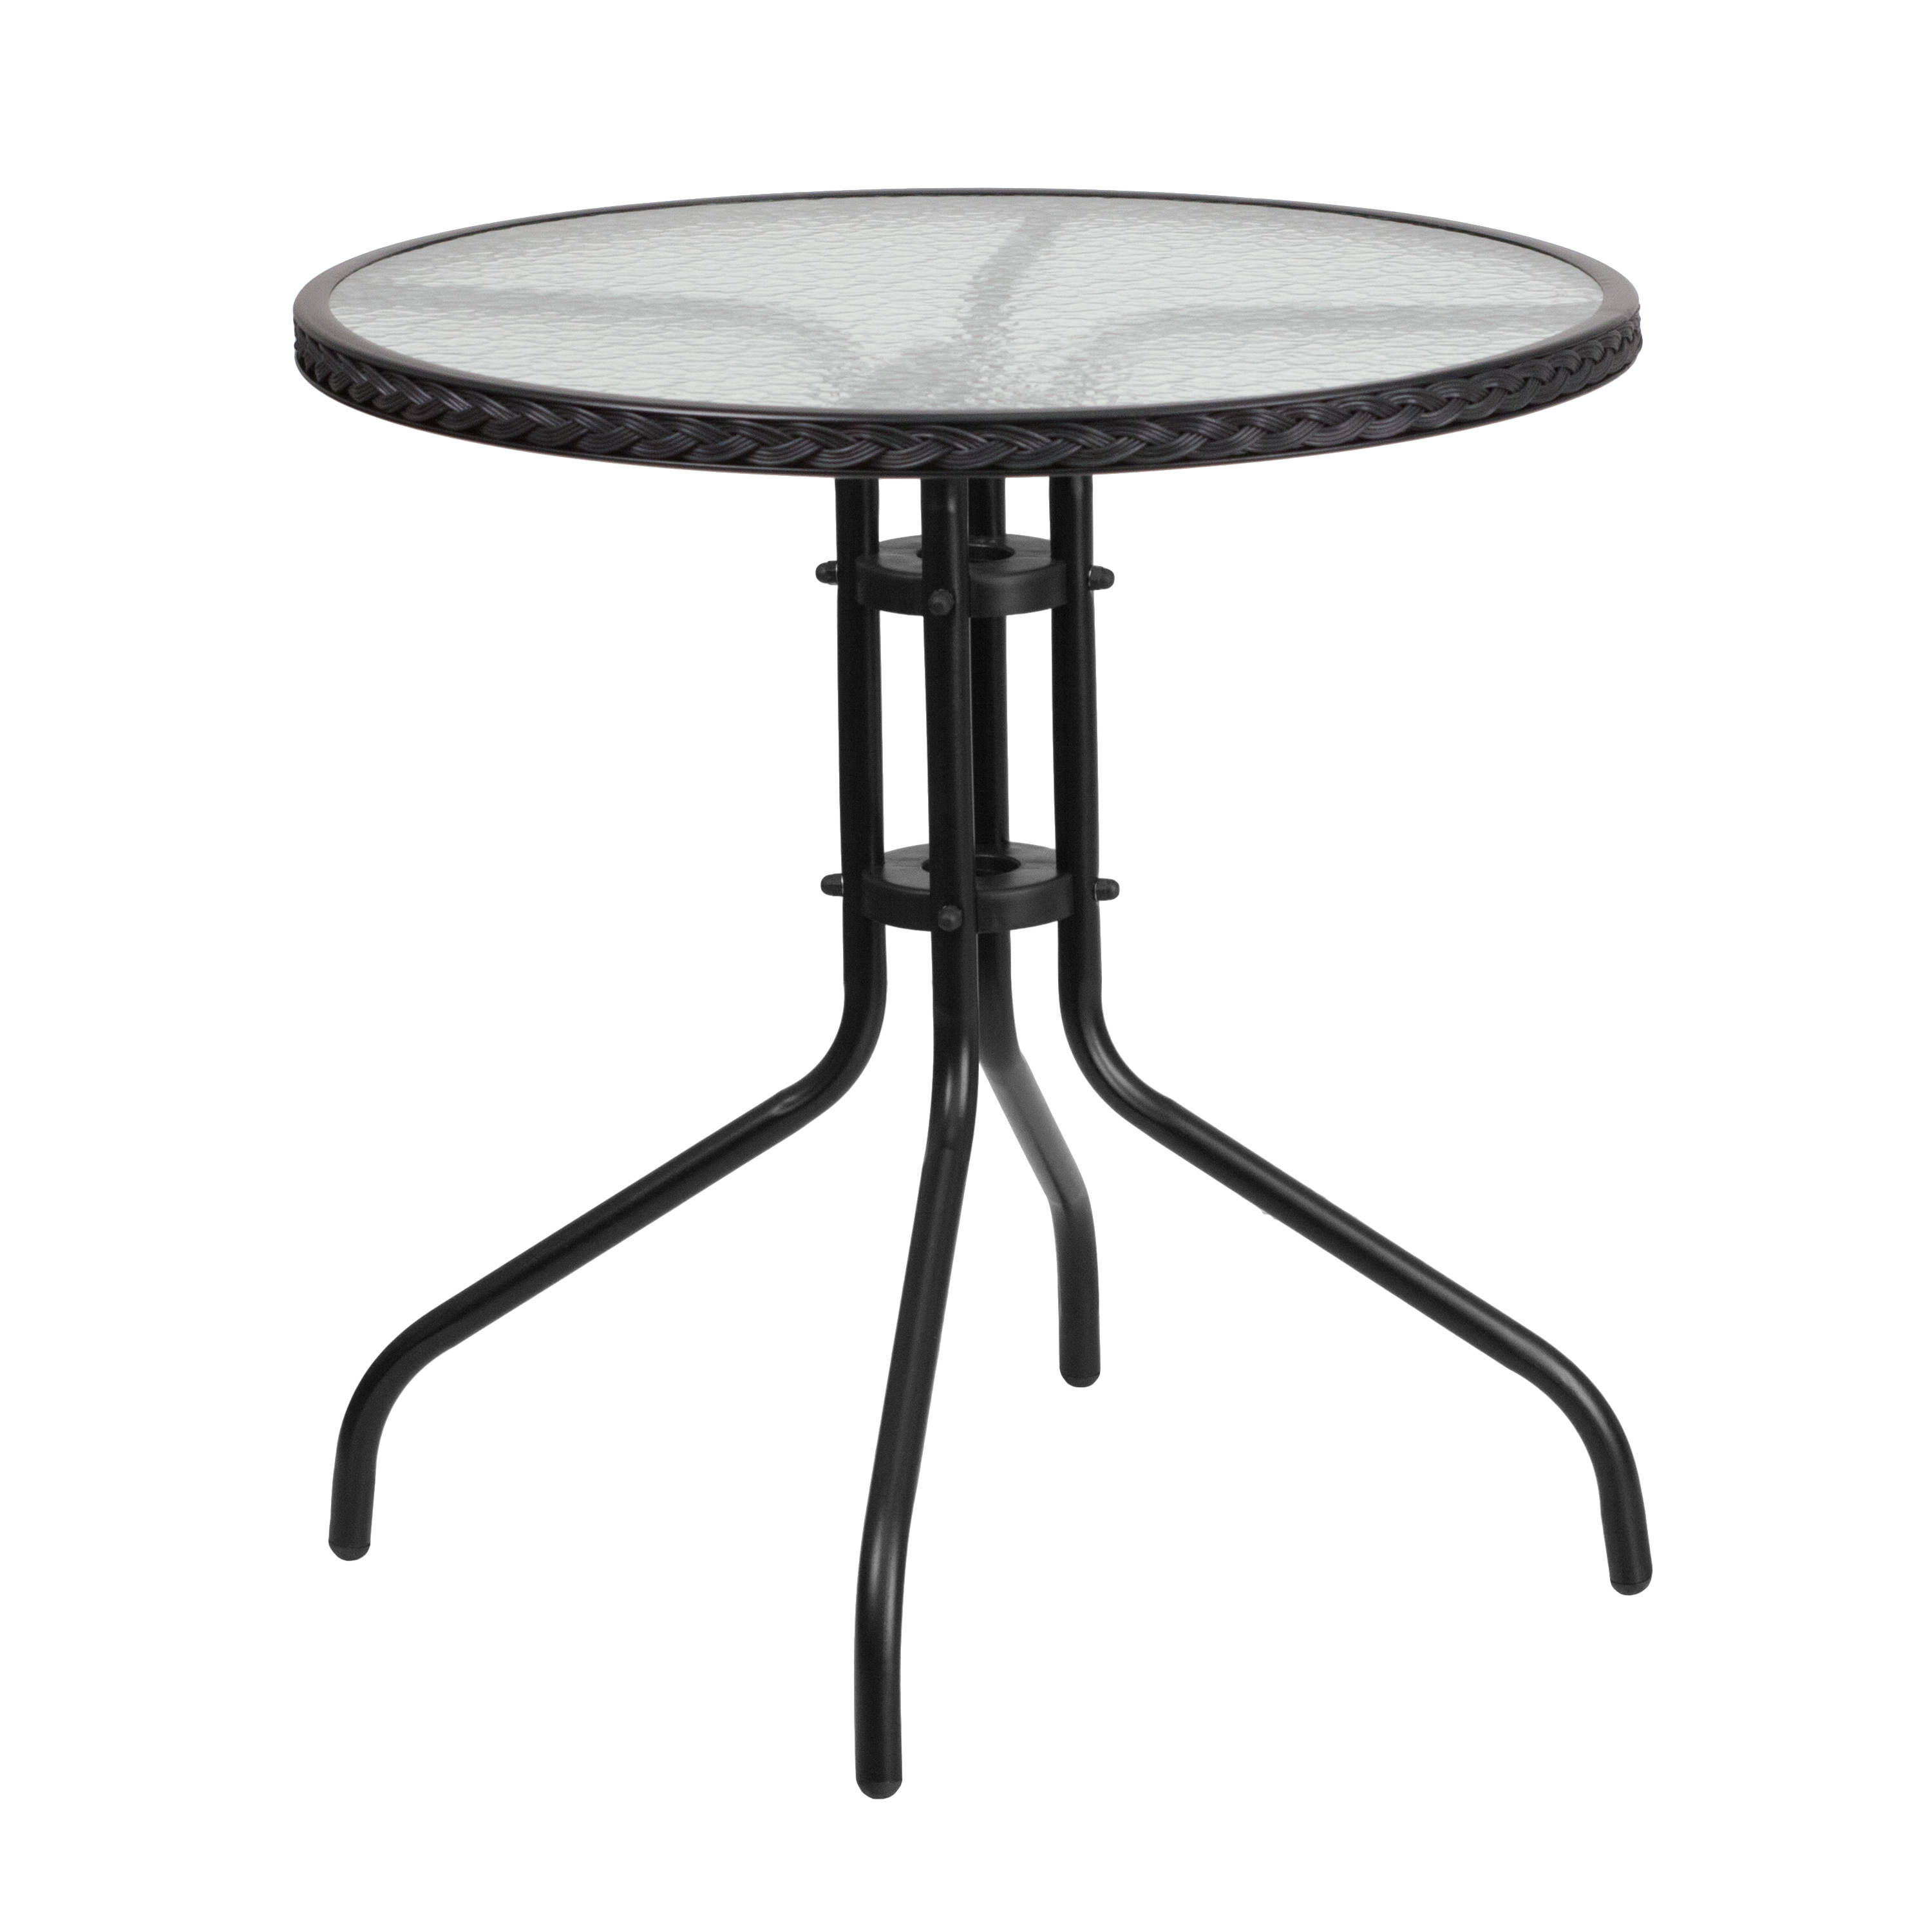 Peachy Flash Furniture 28 Inch Round Table With Black Rattan Edging Lamtechconsult Wood Chair Design Ideas Lamtechconsultcom